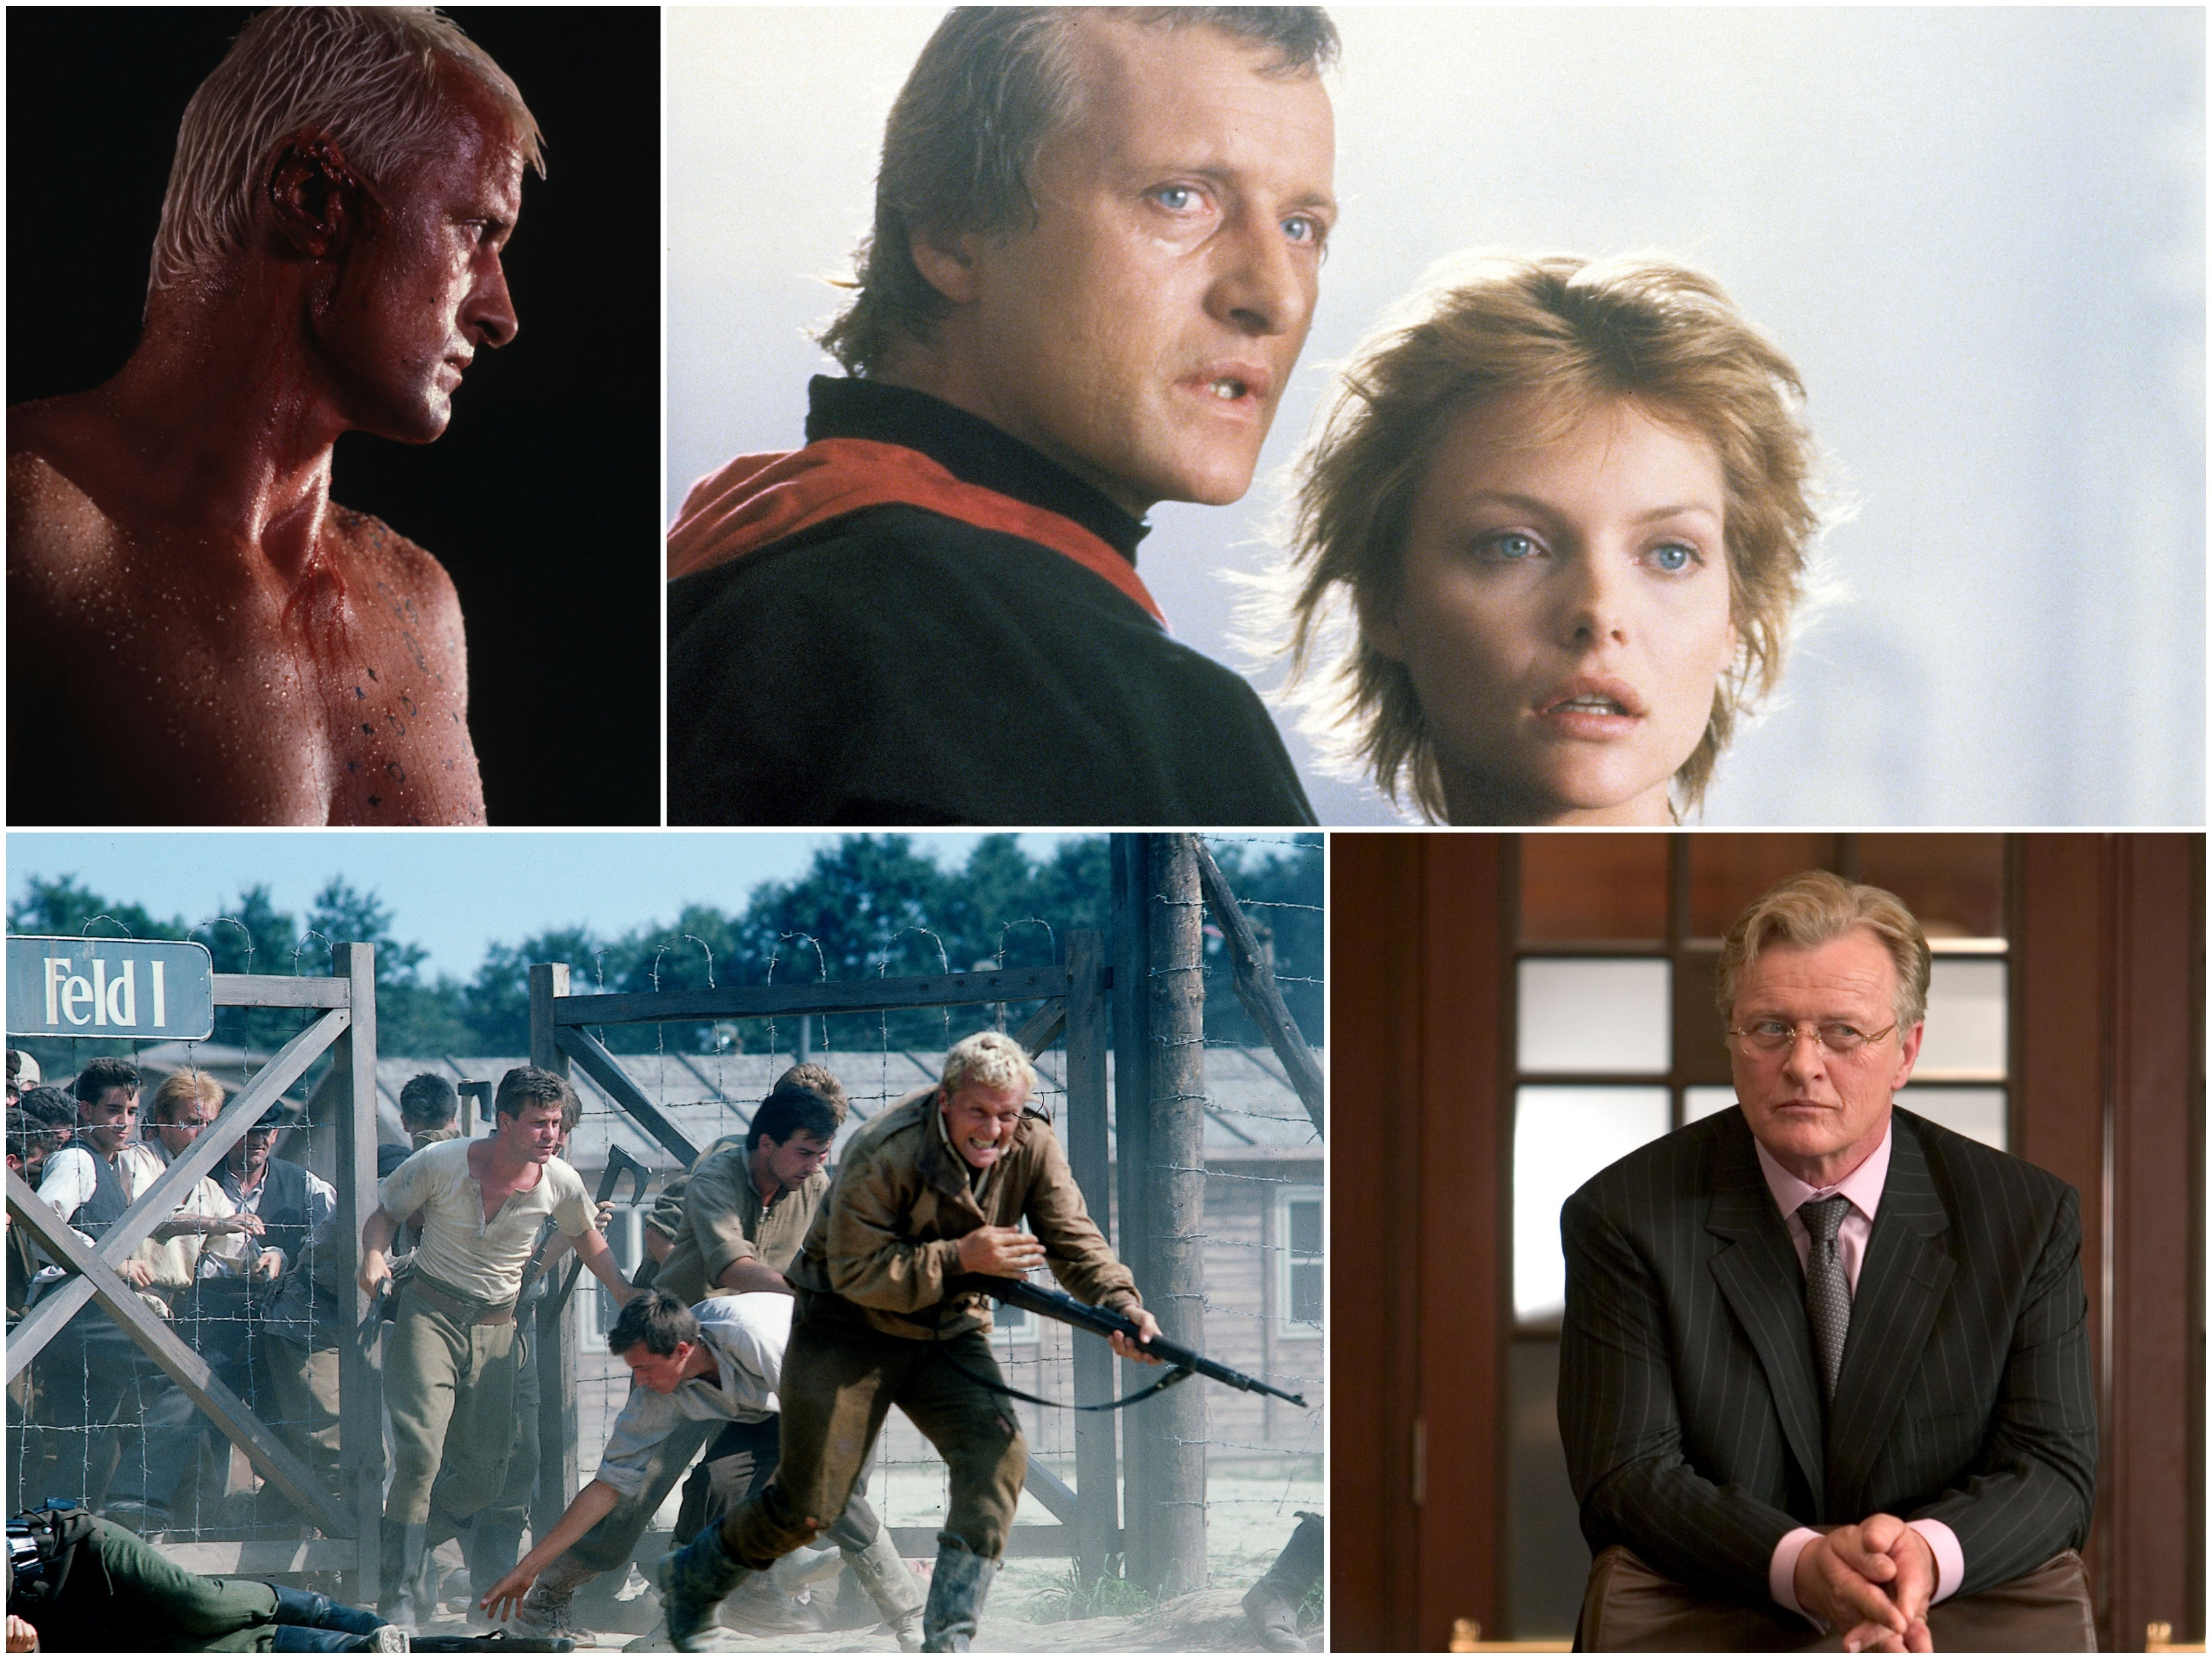 Scenes from films starring Rutger Hauer